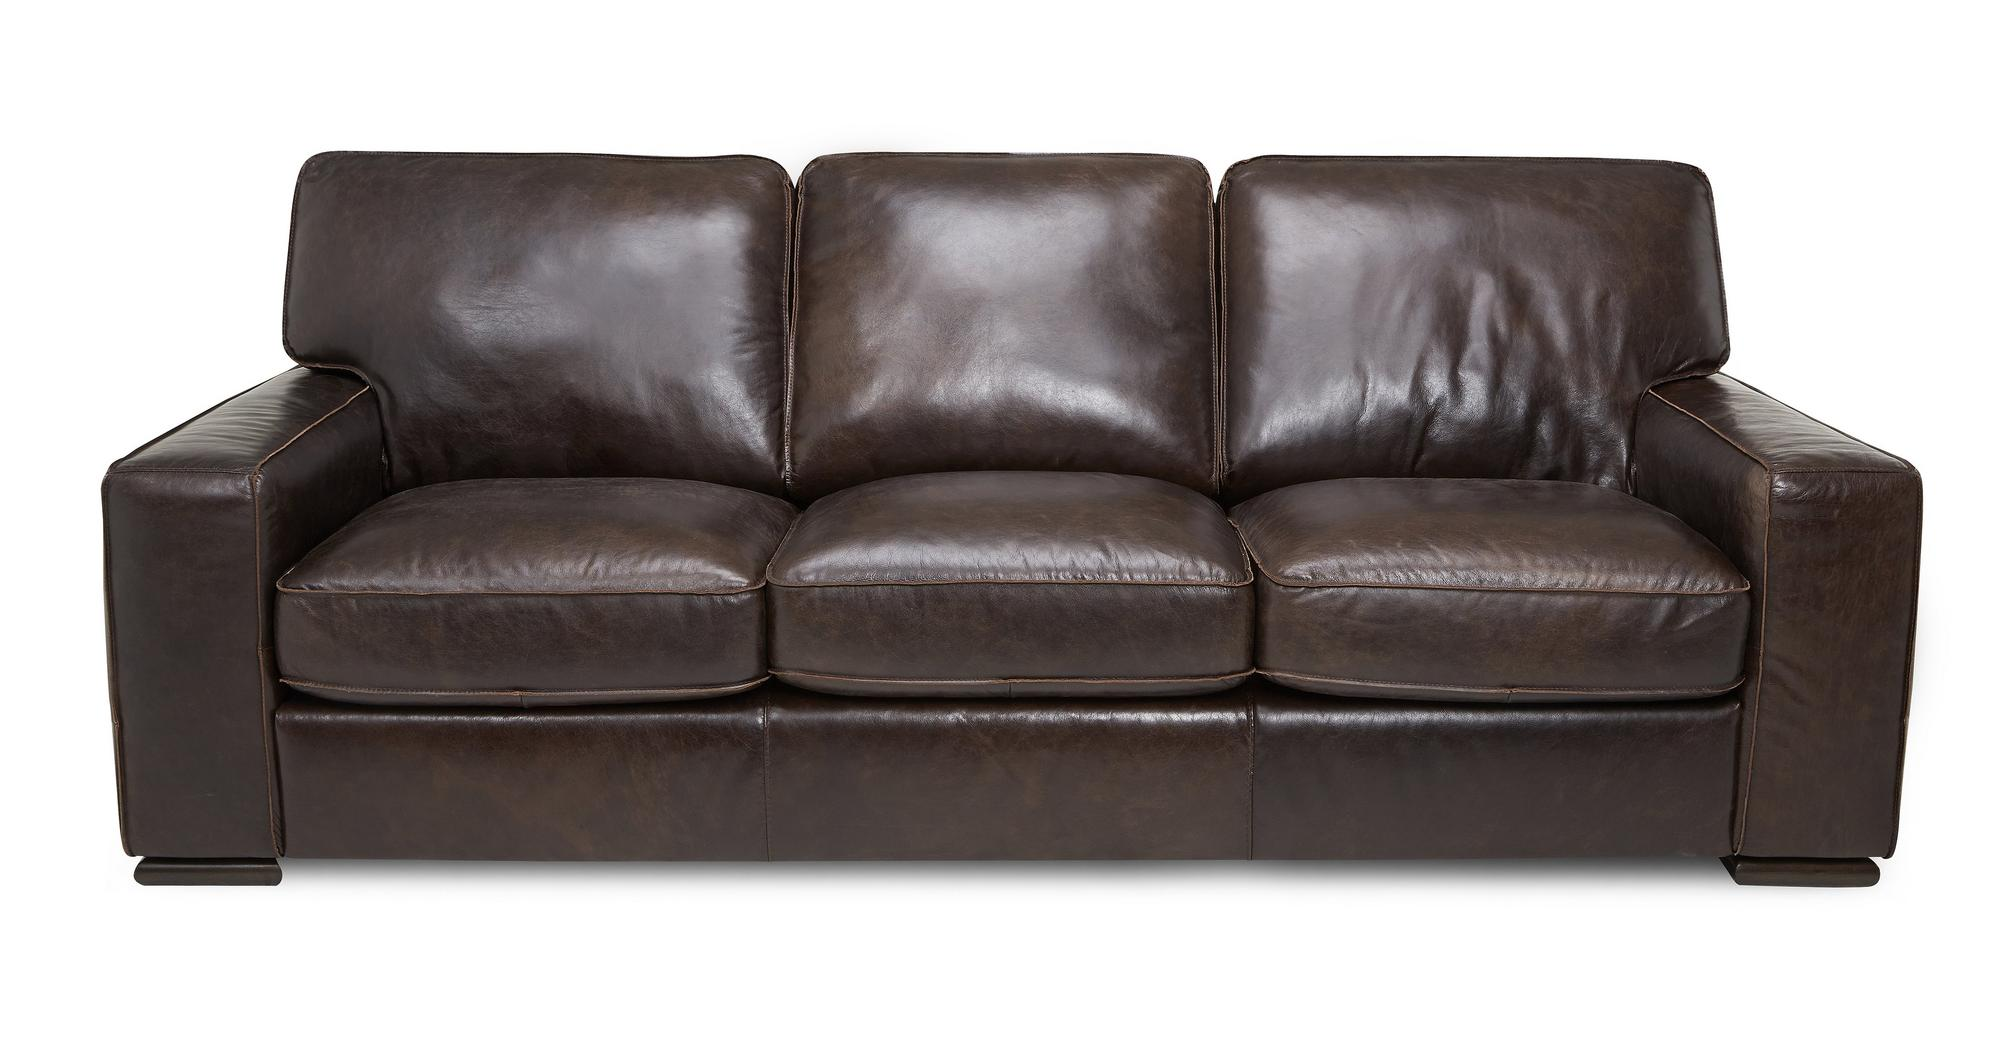 Dfs Brown Sofa 2 X DFS Brown Leather Sofa Sofas Settee Settees